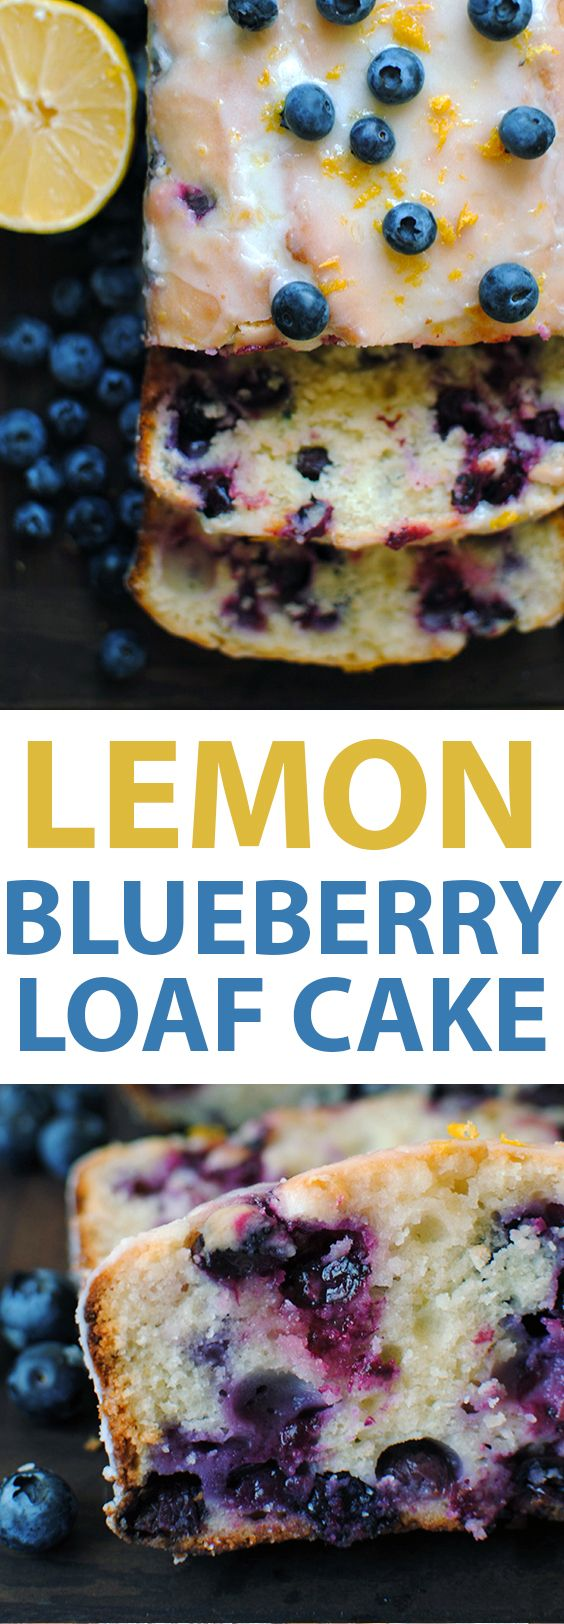 This Lemon Blueberry Loaf Cake is made with lemon juice, lemon zest, fresh juicy blueberries, Greek yogurt, and topped with a sweet lemon glaze.